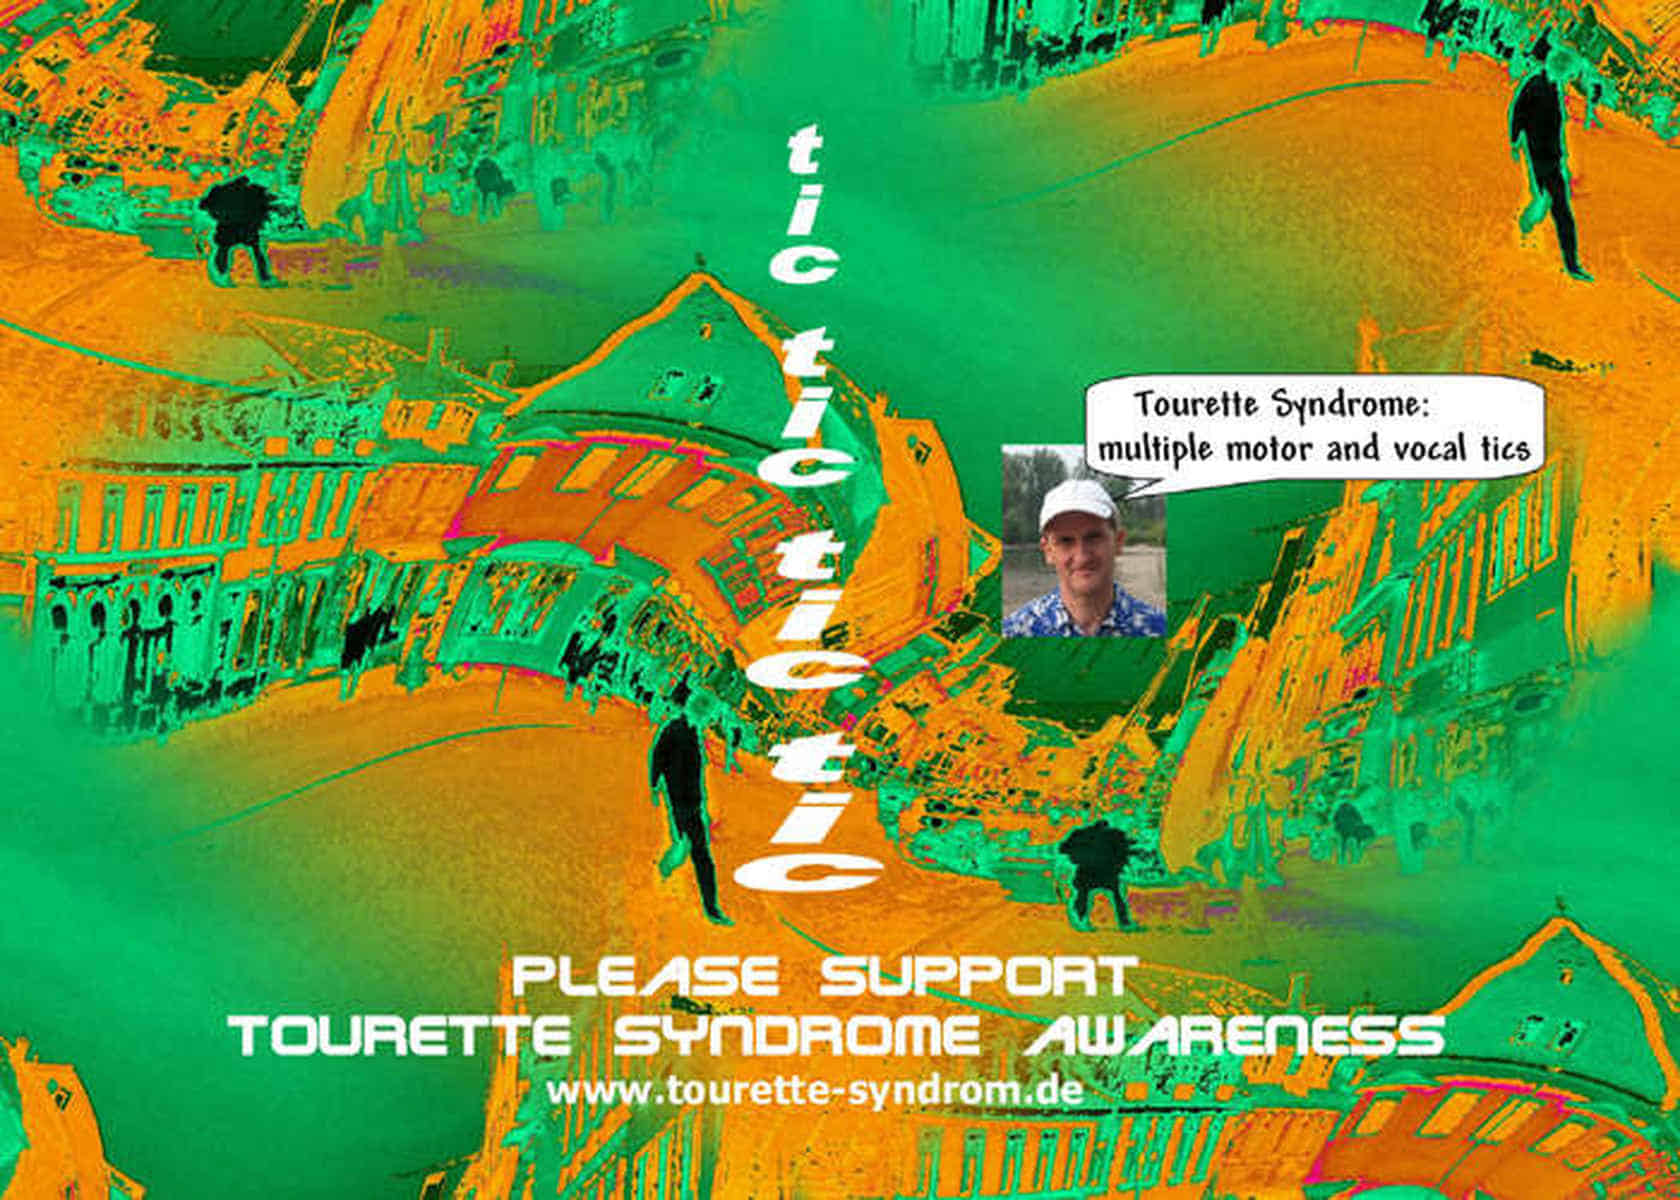 Grafik: Postkarte 02: Please Support Tourette Syndrome Awareness.